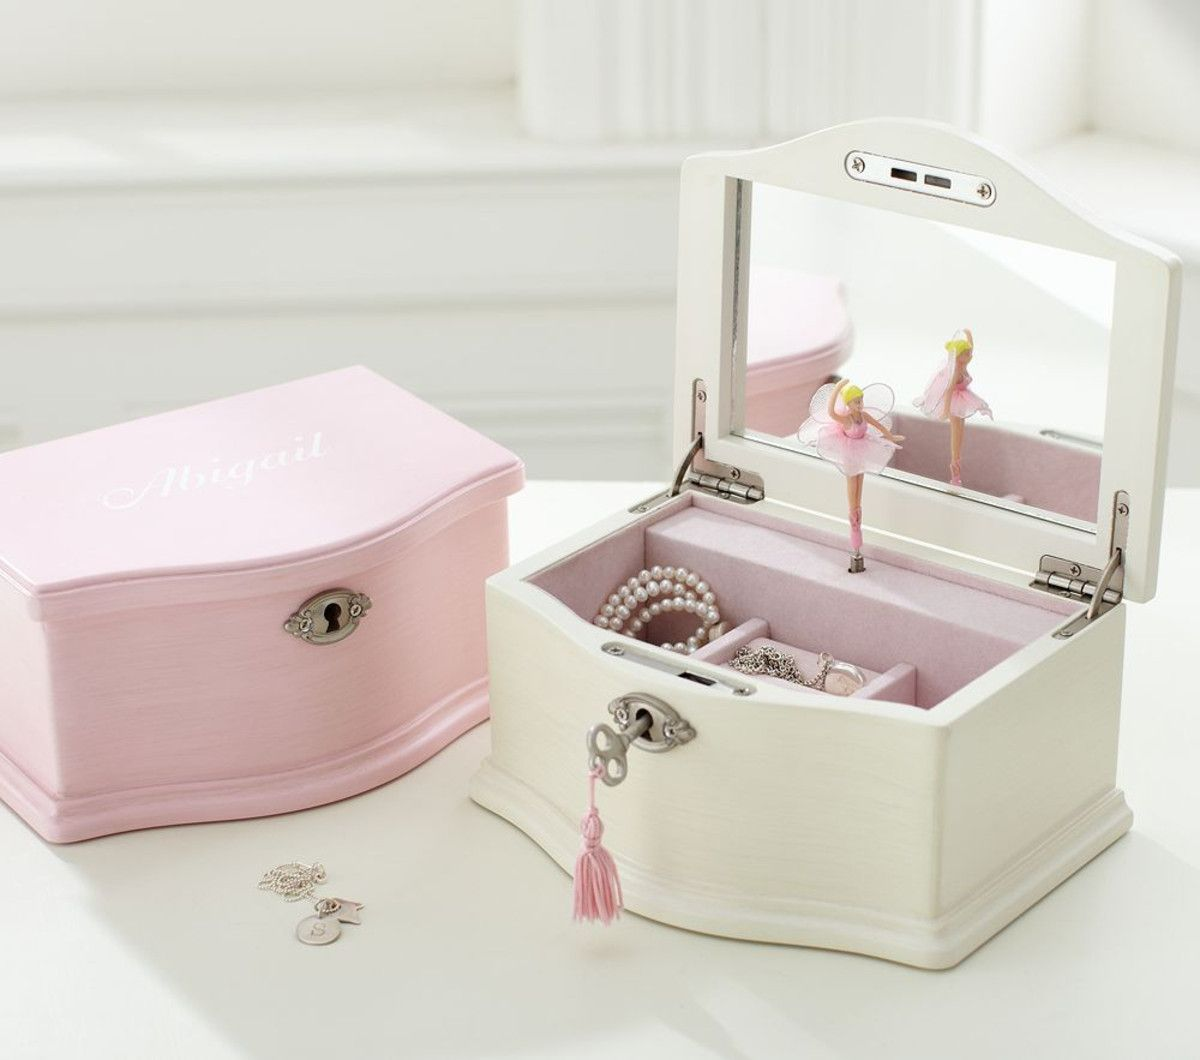 Abigail Medium Jewellery Box With Images Large Jewelry Box